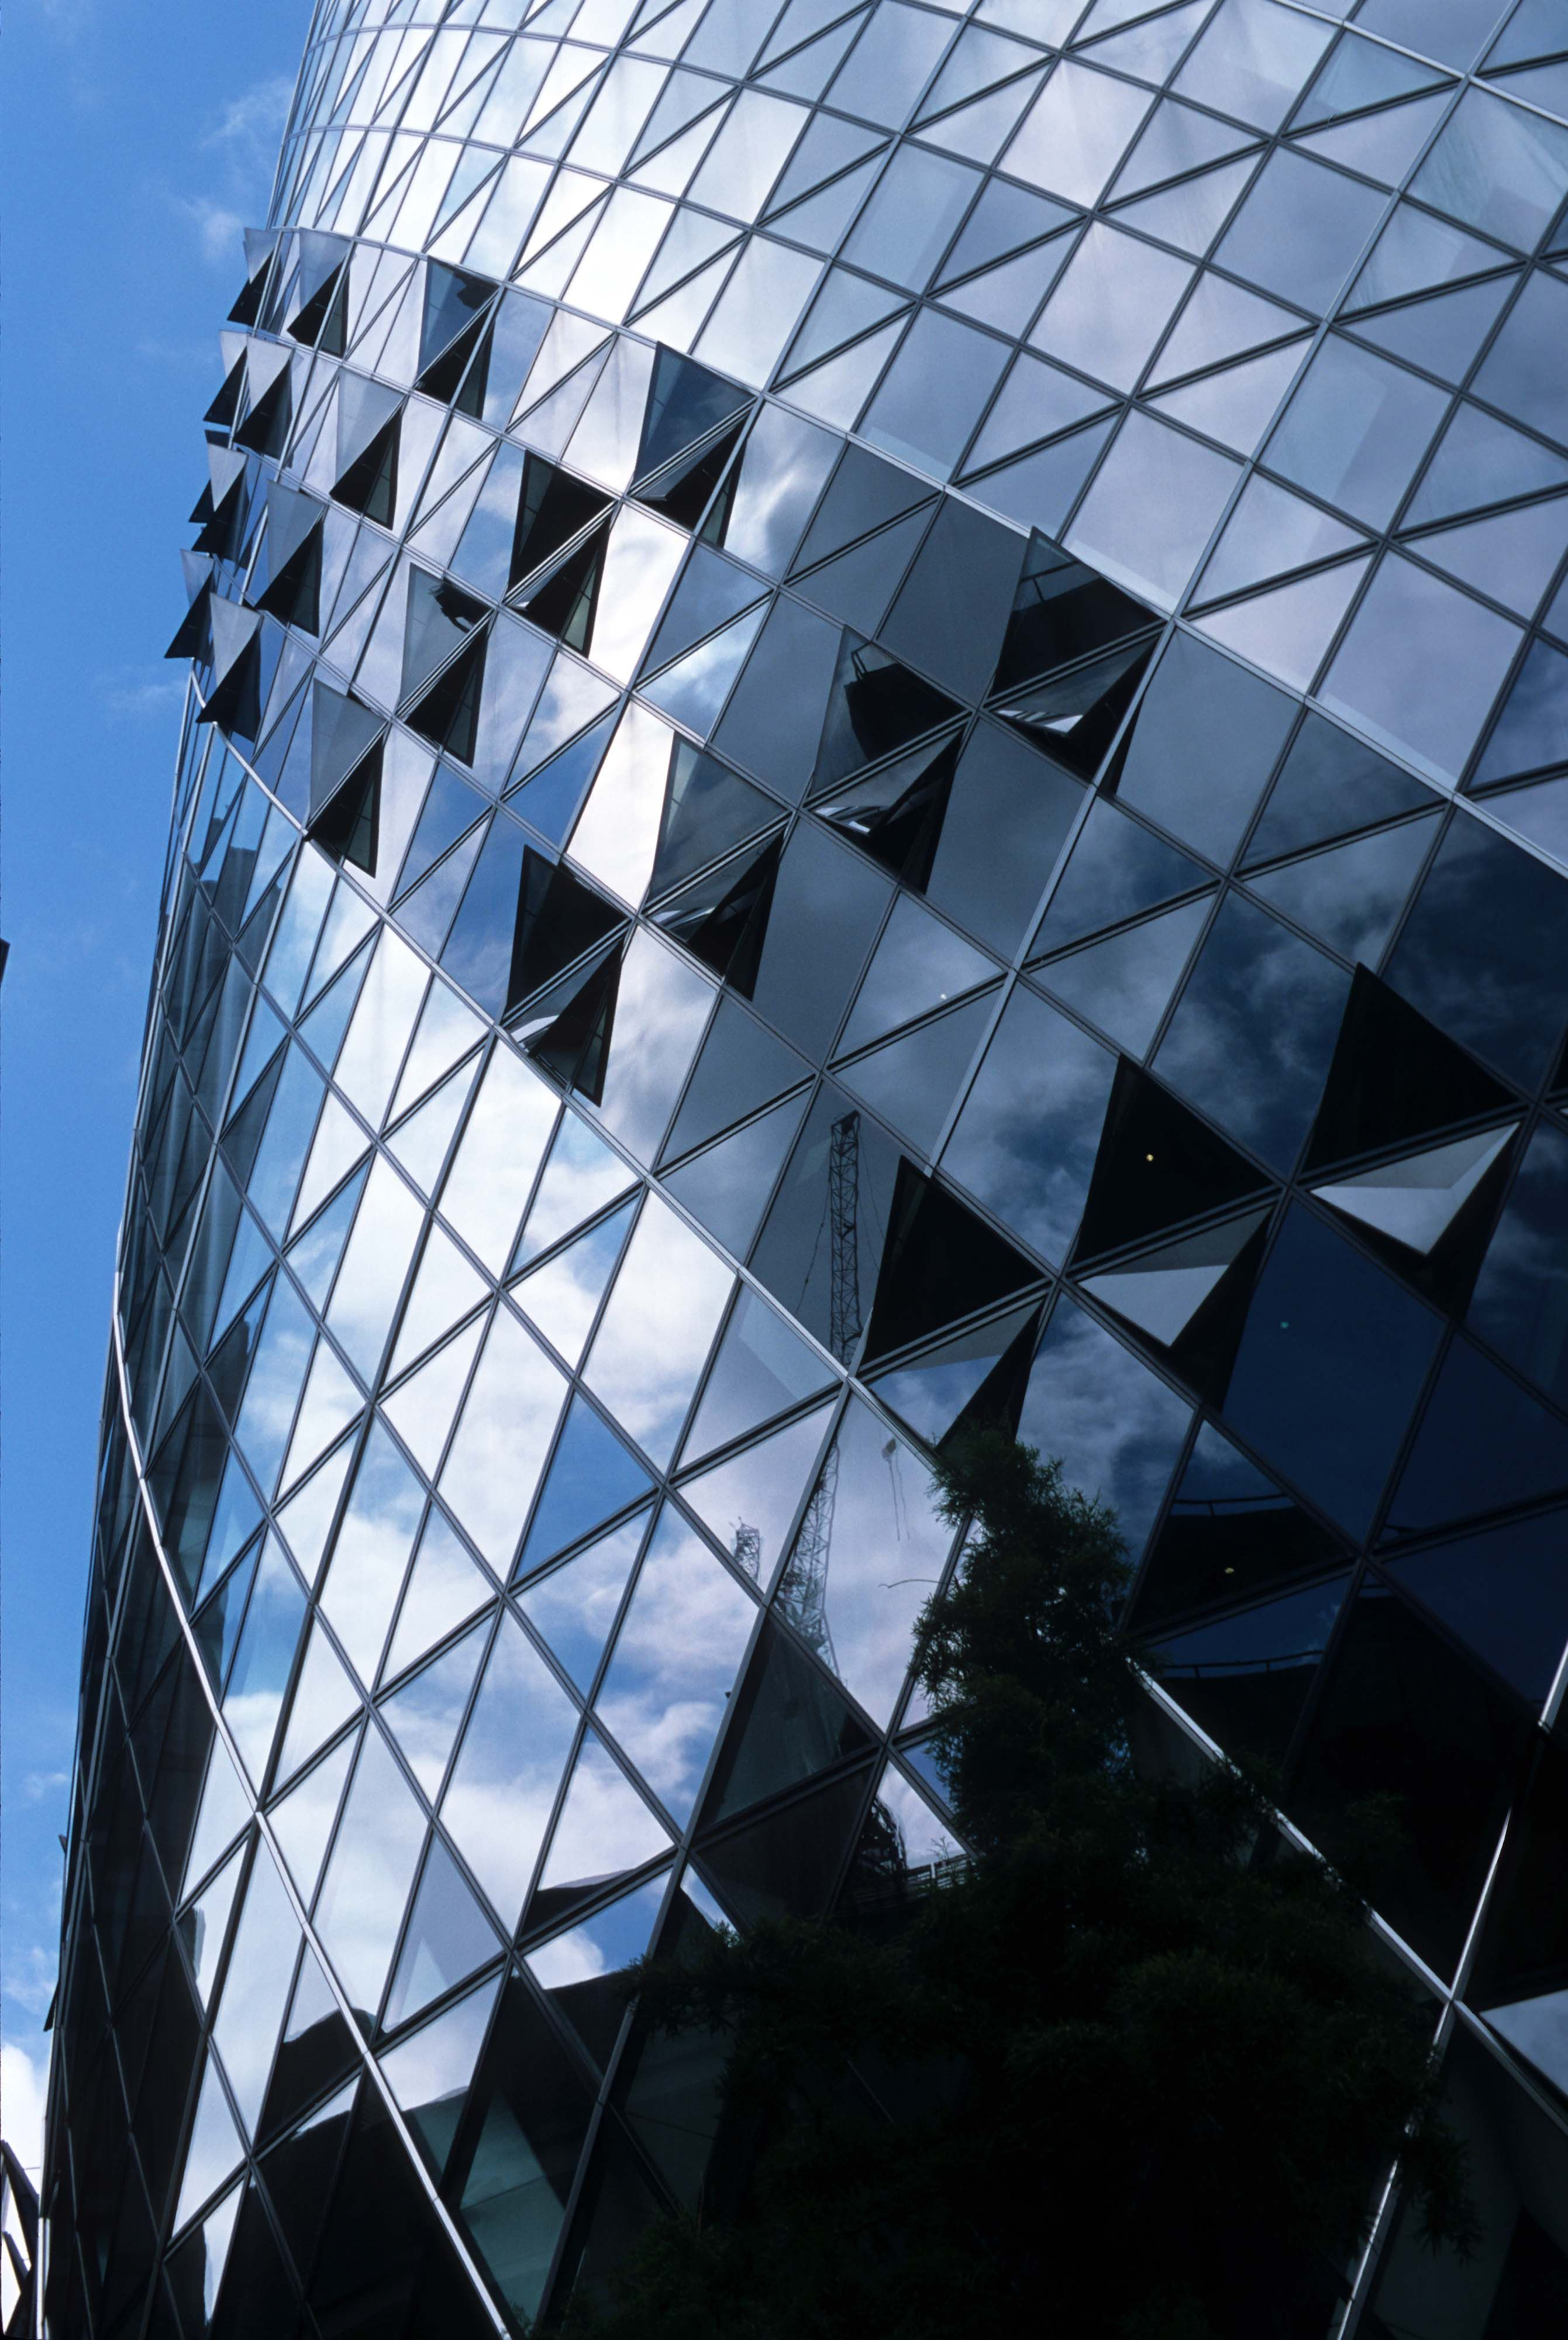 norman foster office. Swiss Re Tower Norman Foster Office